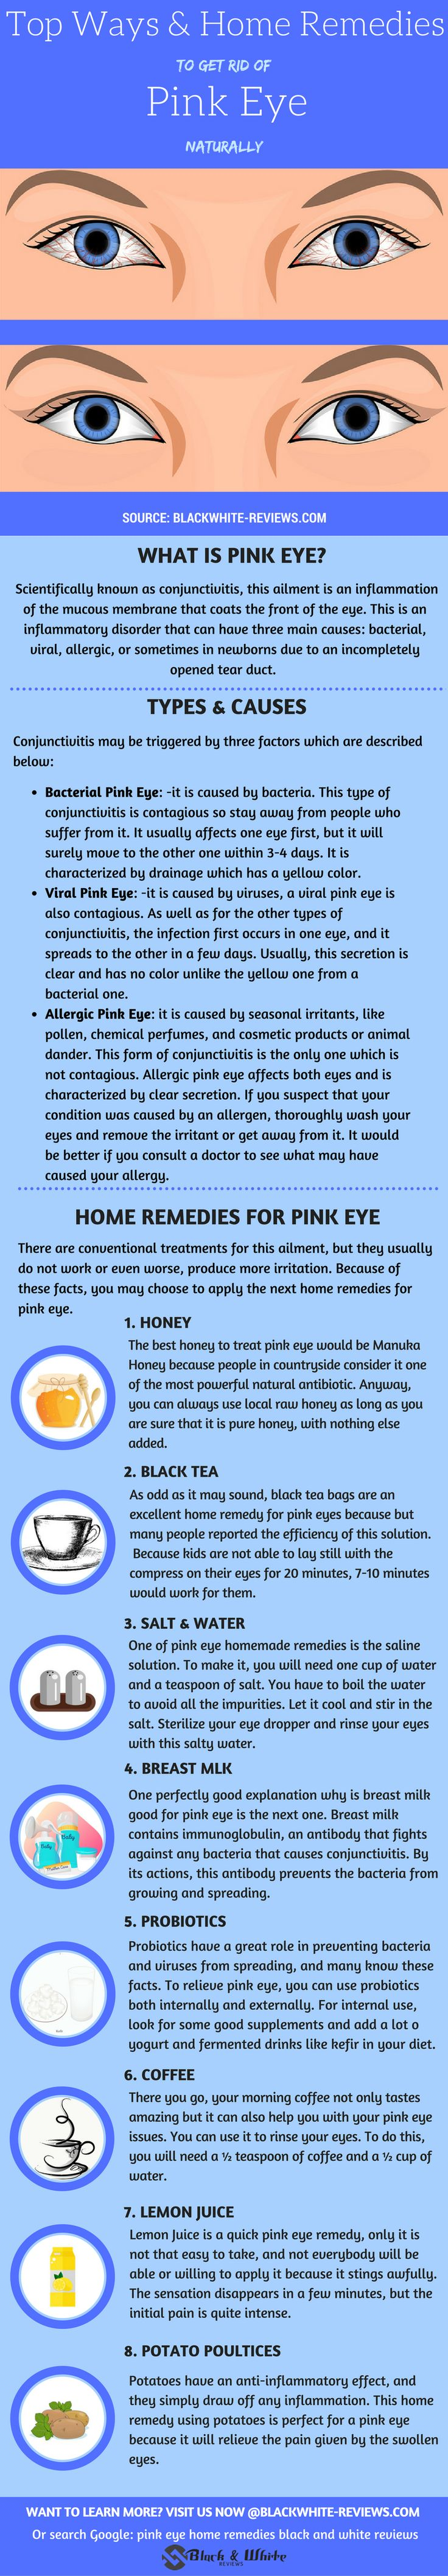 Pink eye remedy. How to get rid of pink eye by using honey, black tea, saline water, breast milk, probiotics, coffee, lemon juice or potato poultices.